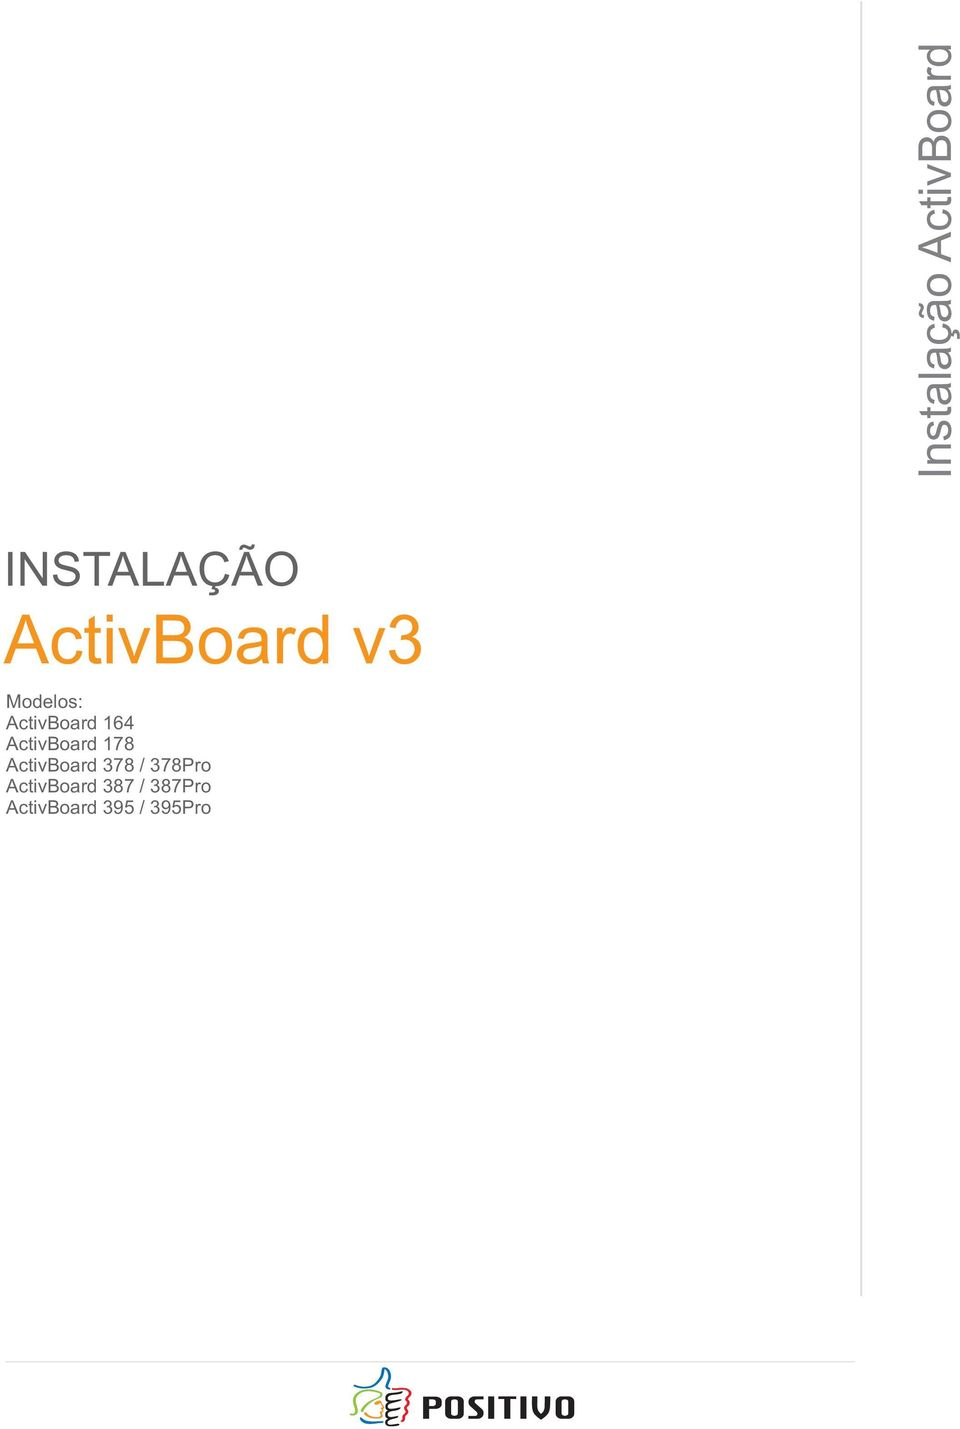 ActivBoard 178 ActivBoard 378 / 378Pro